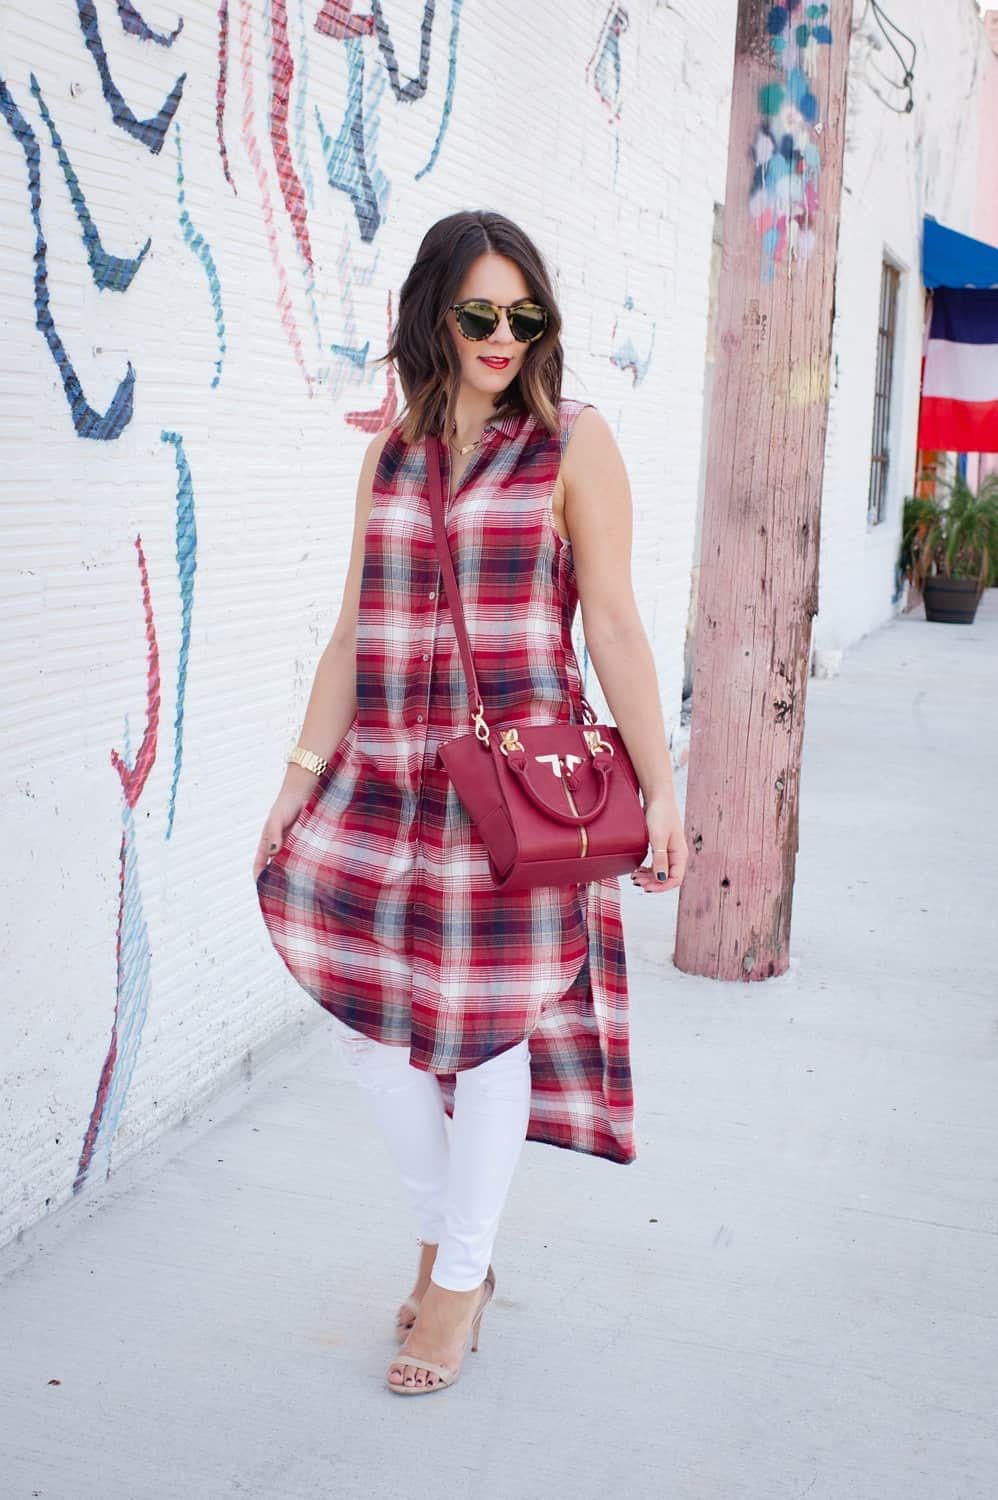 Plaid long shirt and white jeans for fall via @mystylevita [My Style Vita] - 9